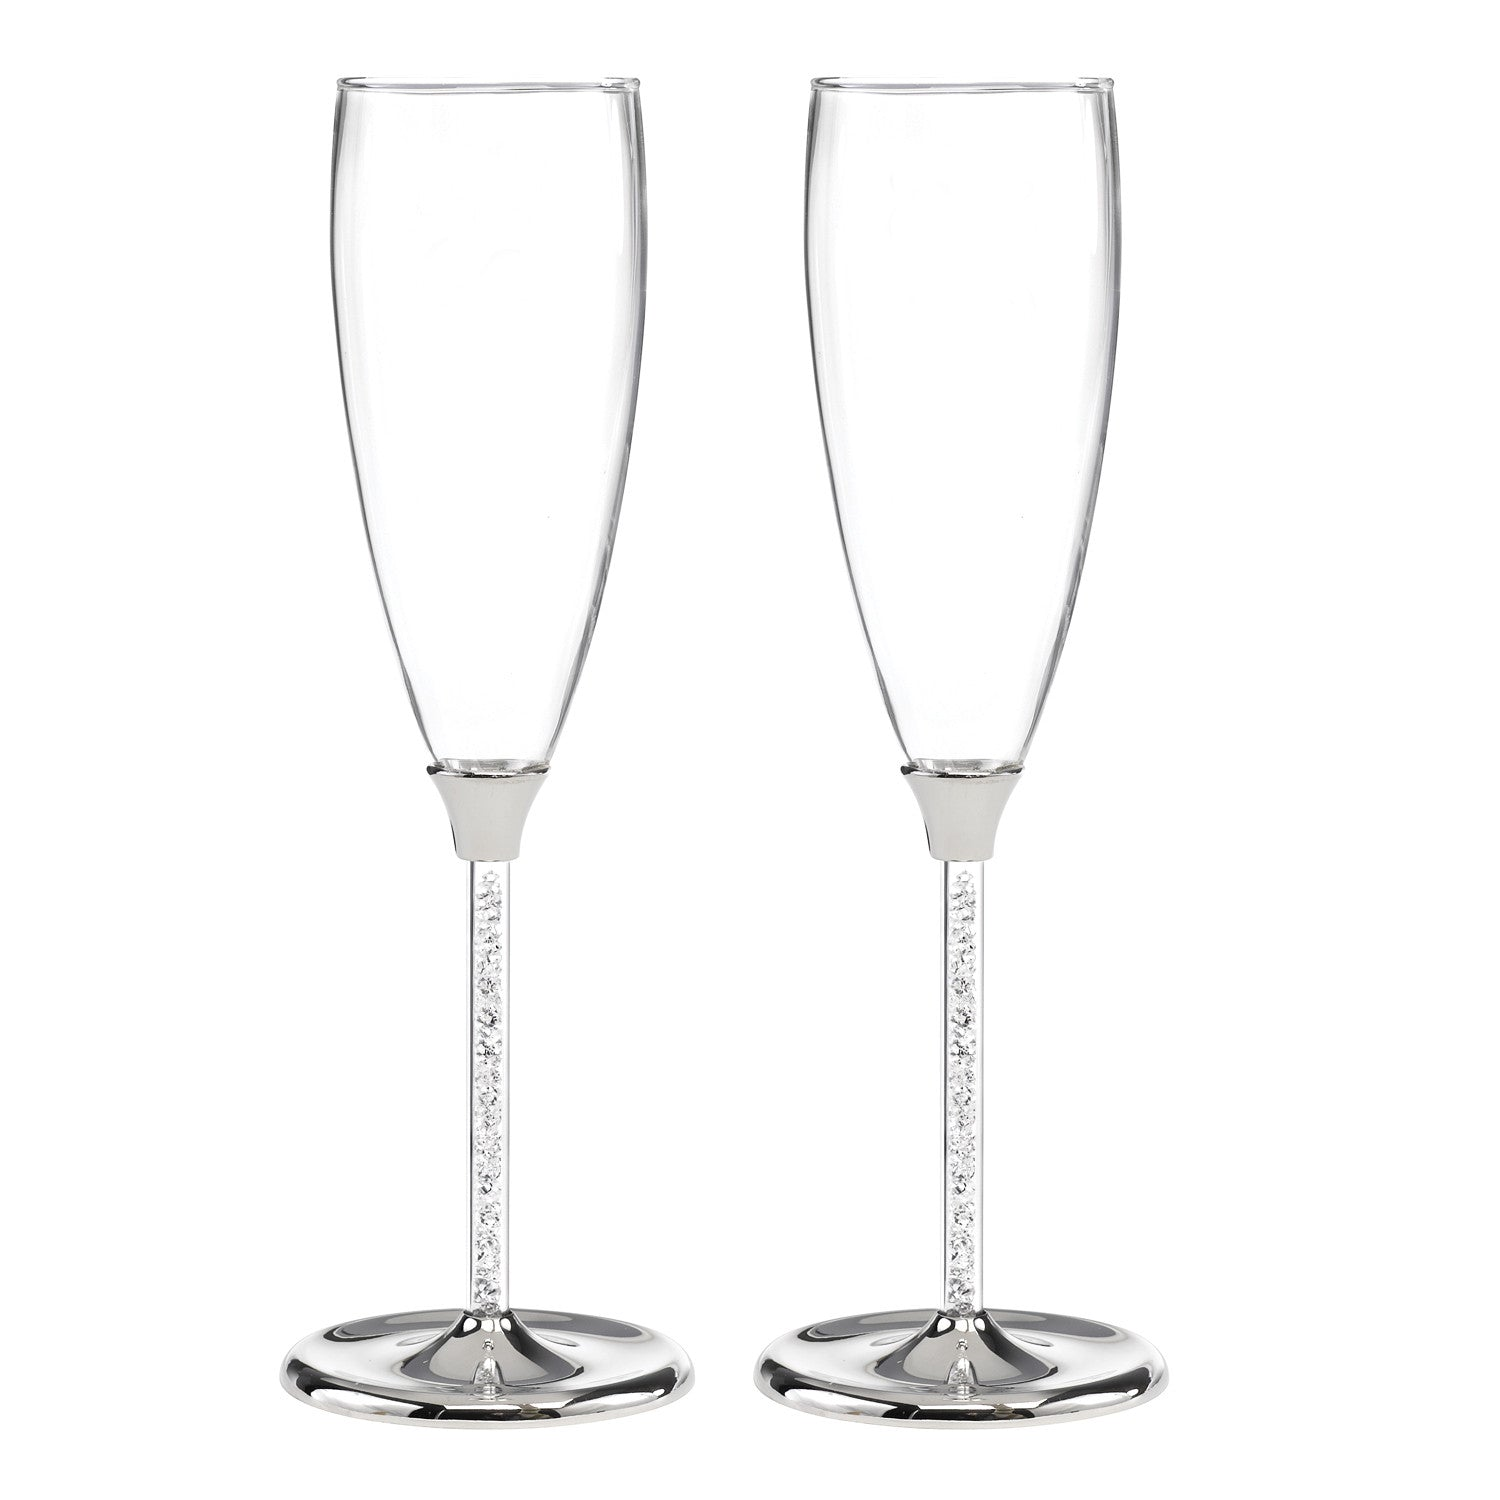 Glittering Beads 7 Piece Wedding Flute Candle and Cake Serving Set